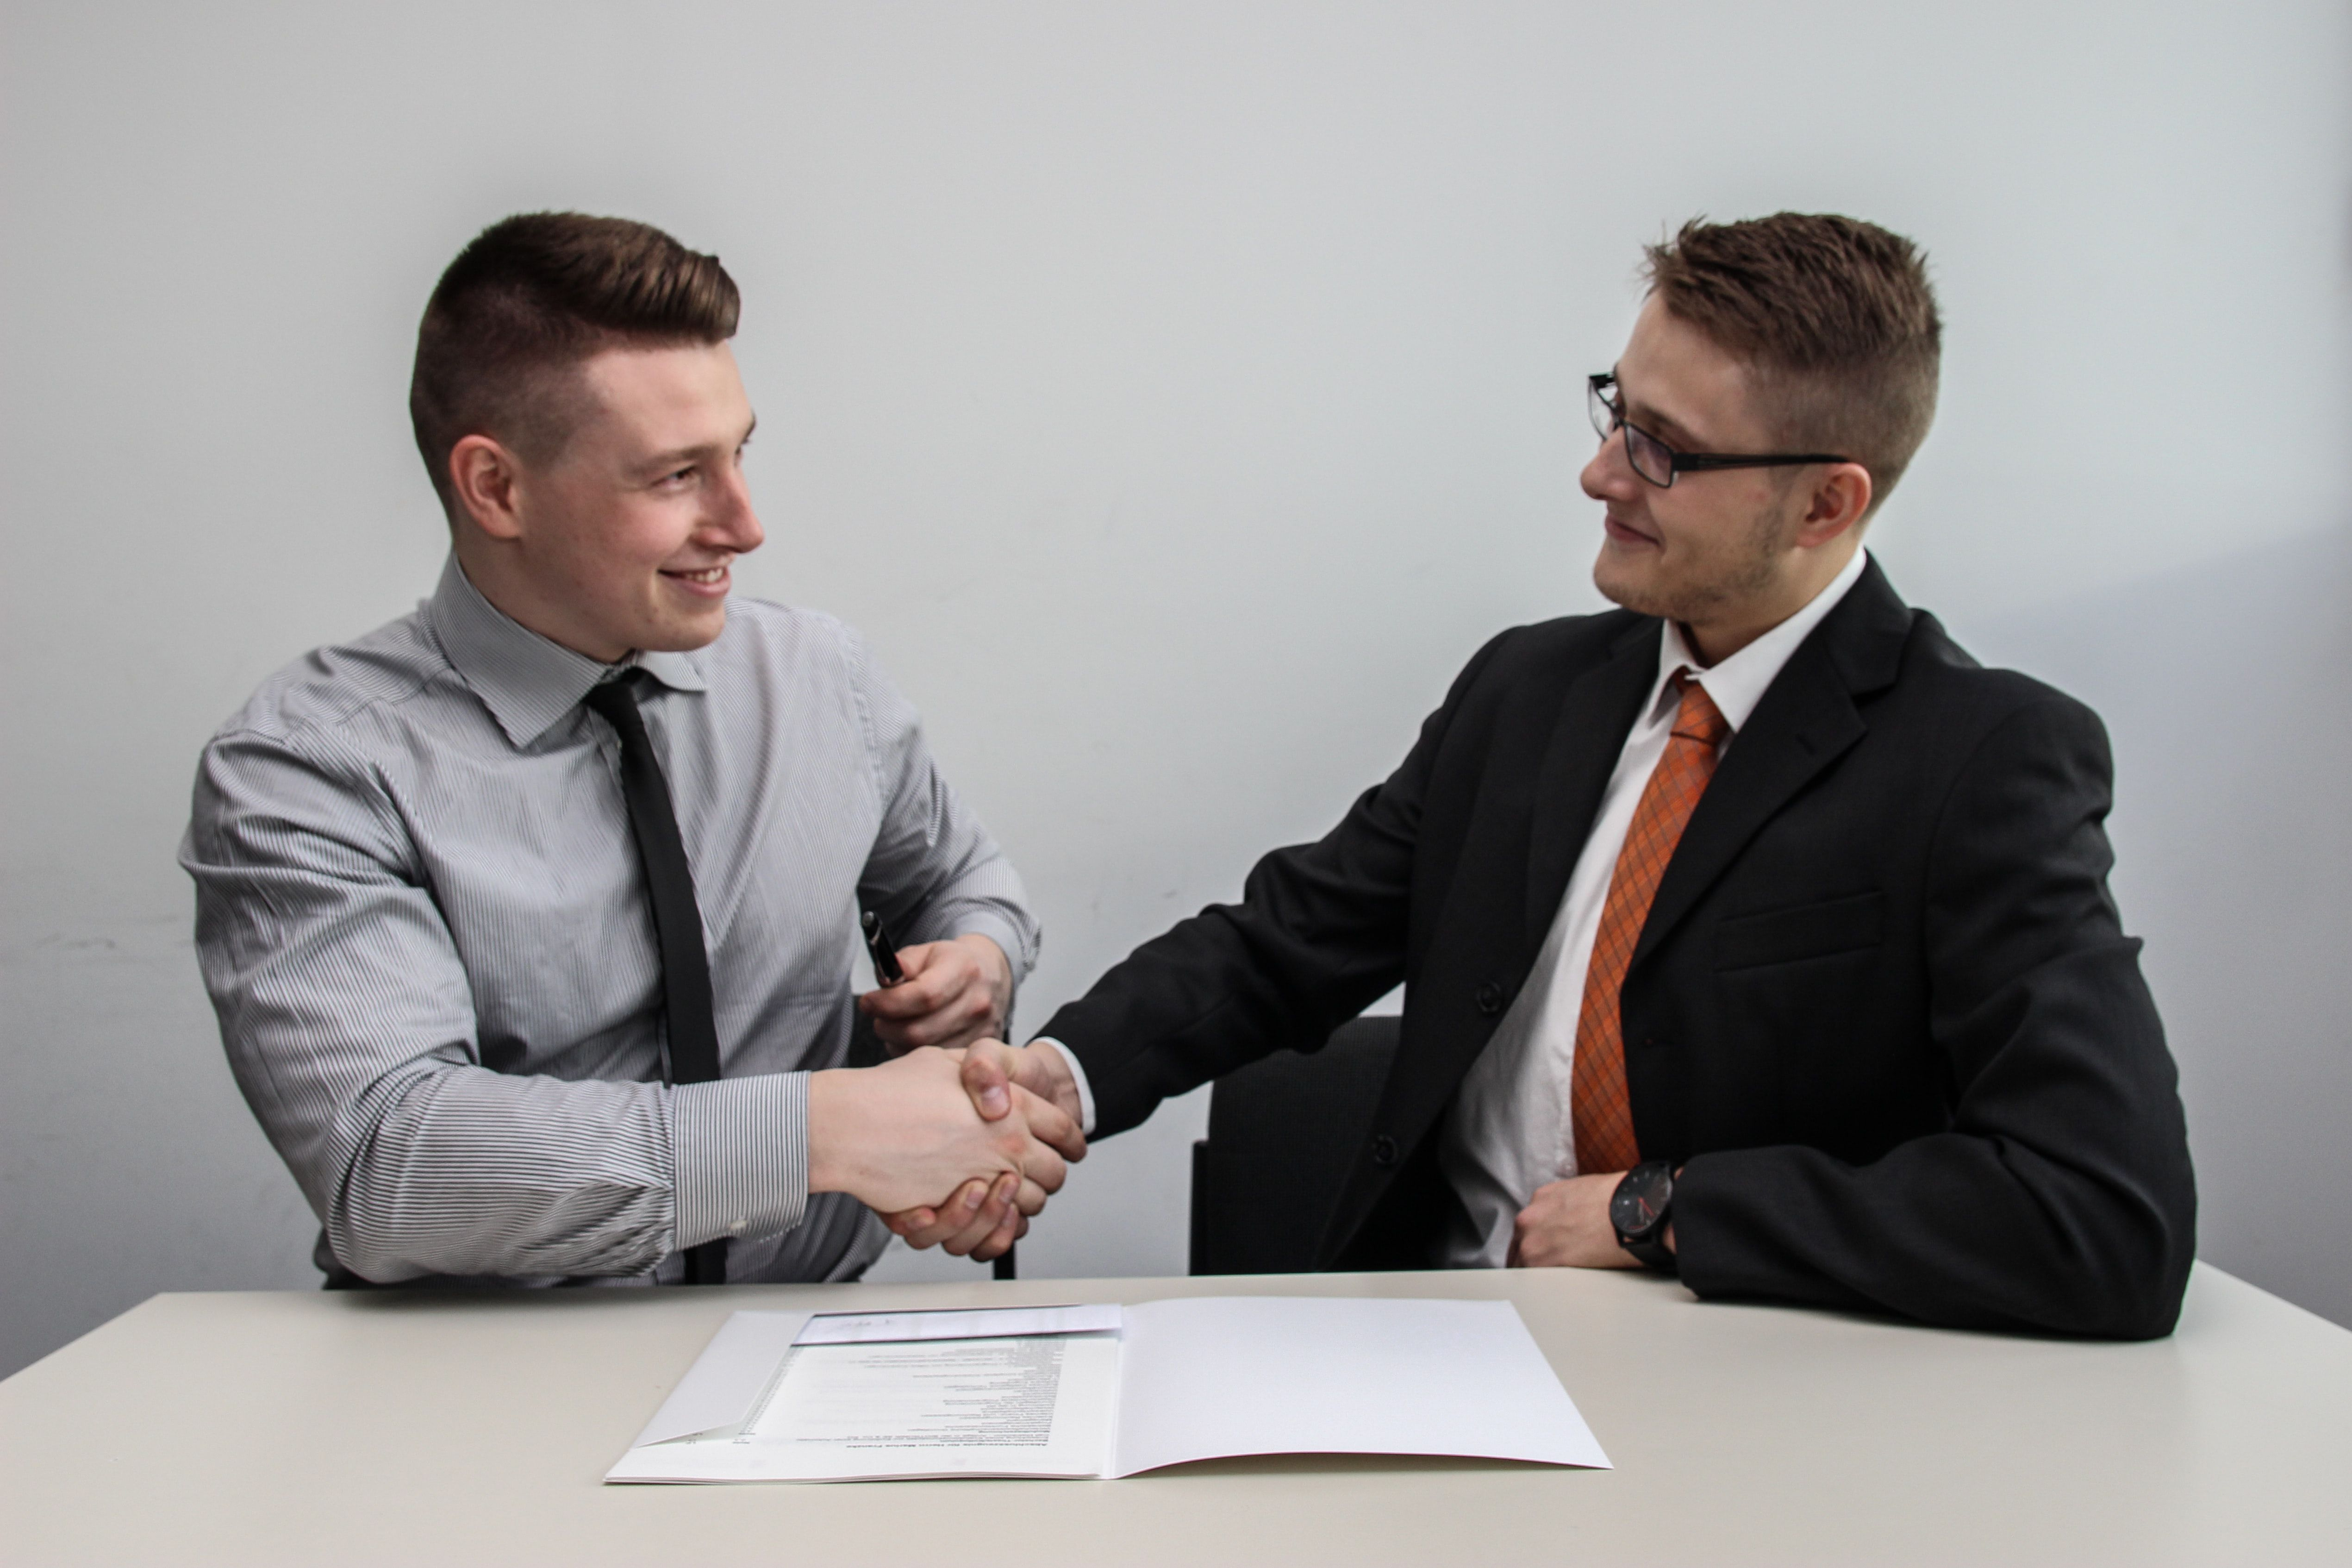 /10-ways-to-effectively-sell-yourself-during-a-job-interview-w8z315h feature image